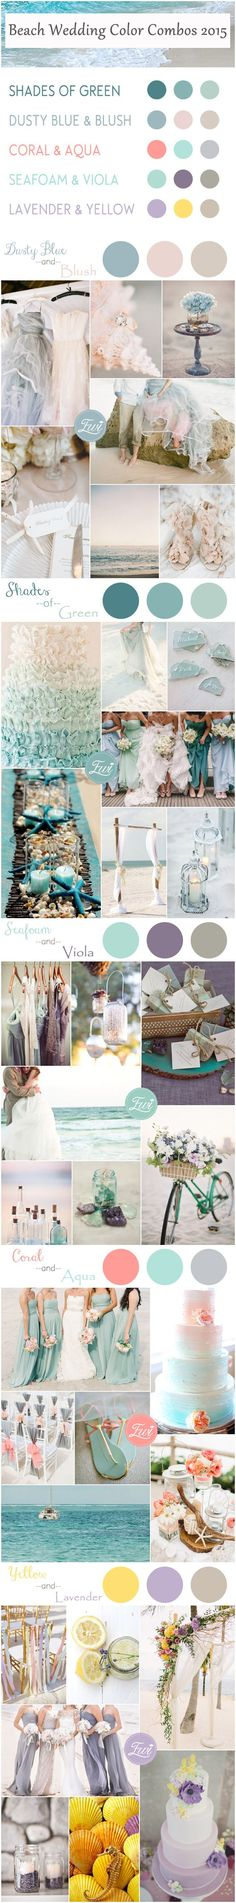 Top 5 Beach Themed Wedding Color Ideas #BeachWeddingInspirations